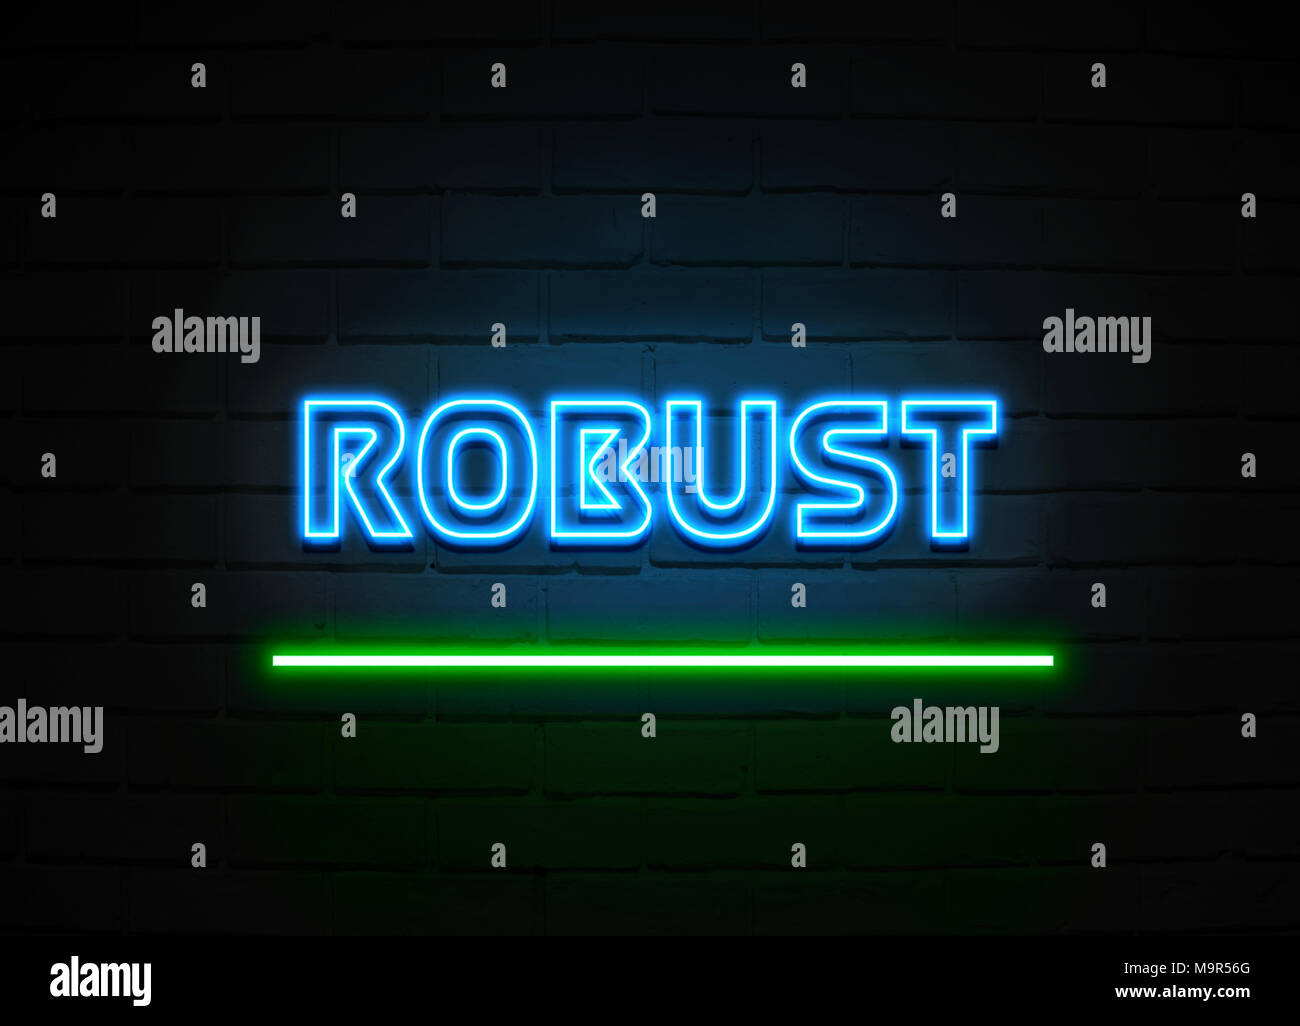 robust neon sign glowing neon sign on brickwall wall 3d rendered